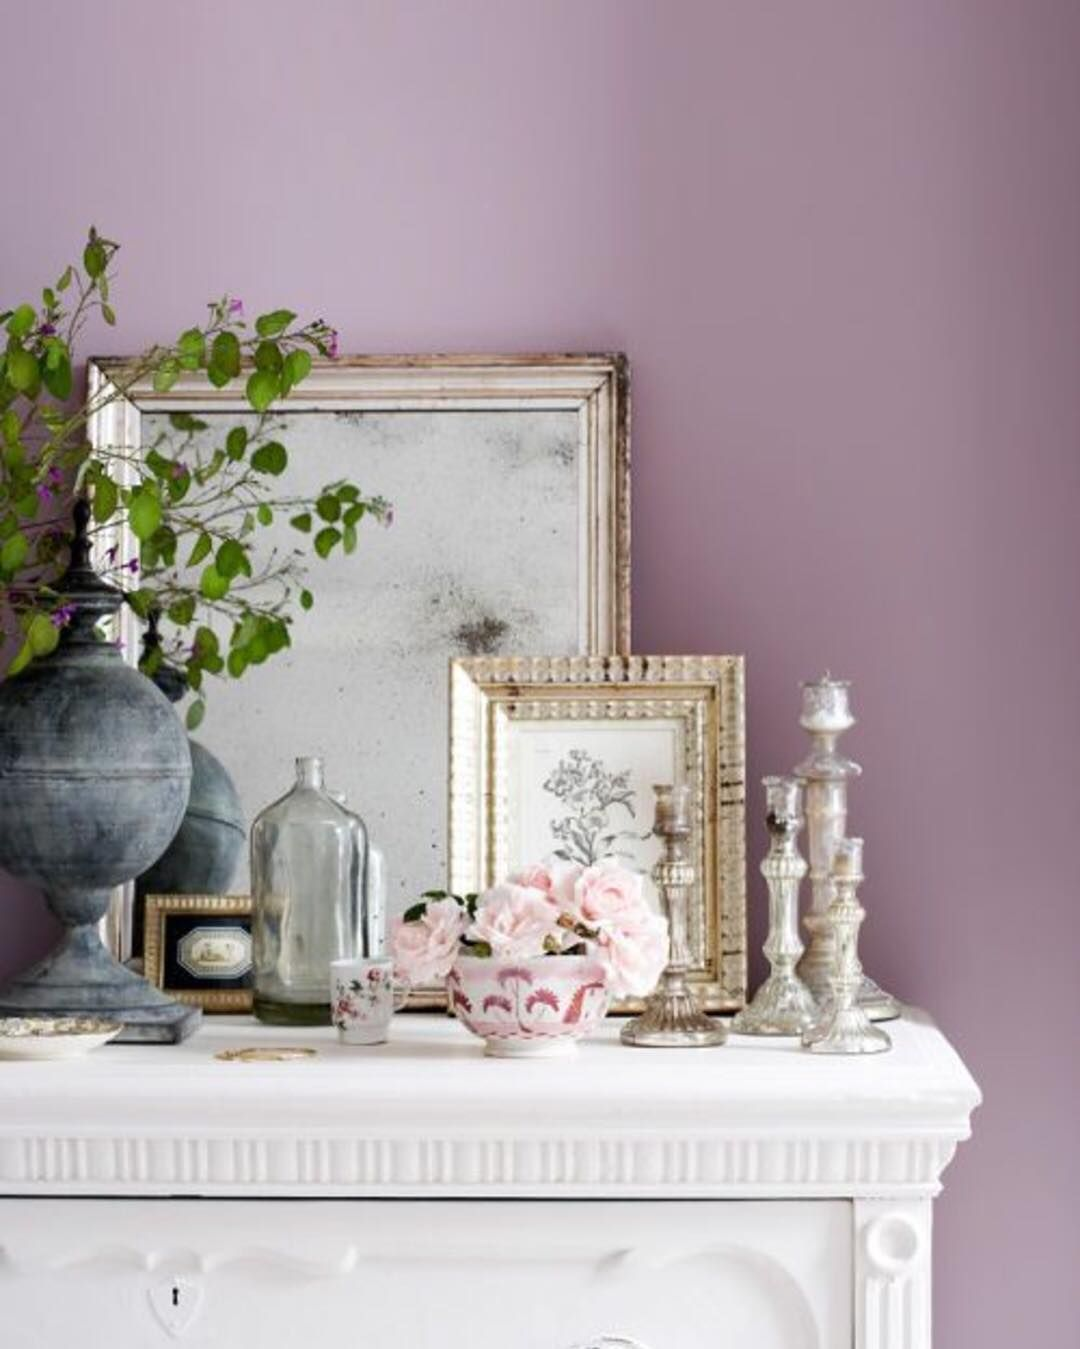 15 Of The Best Farmhouse Style Wall Colors To Use Lila Schlafzimmer Wandfarbe Kommode Shabby Chic